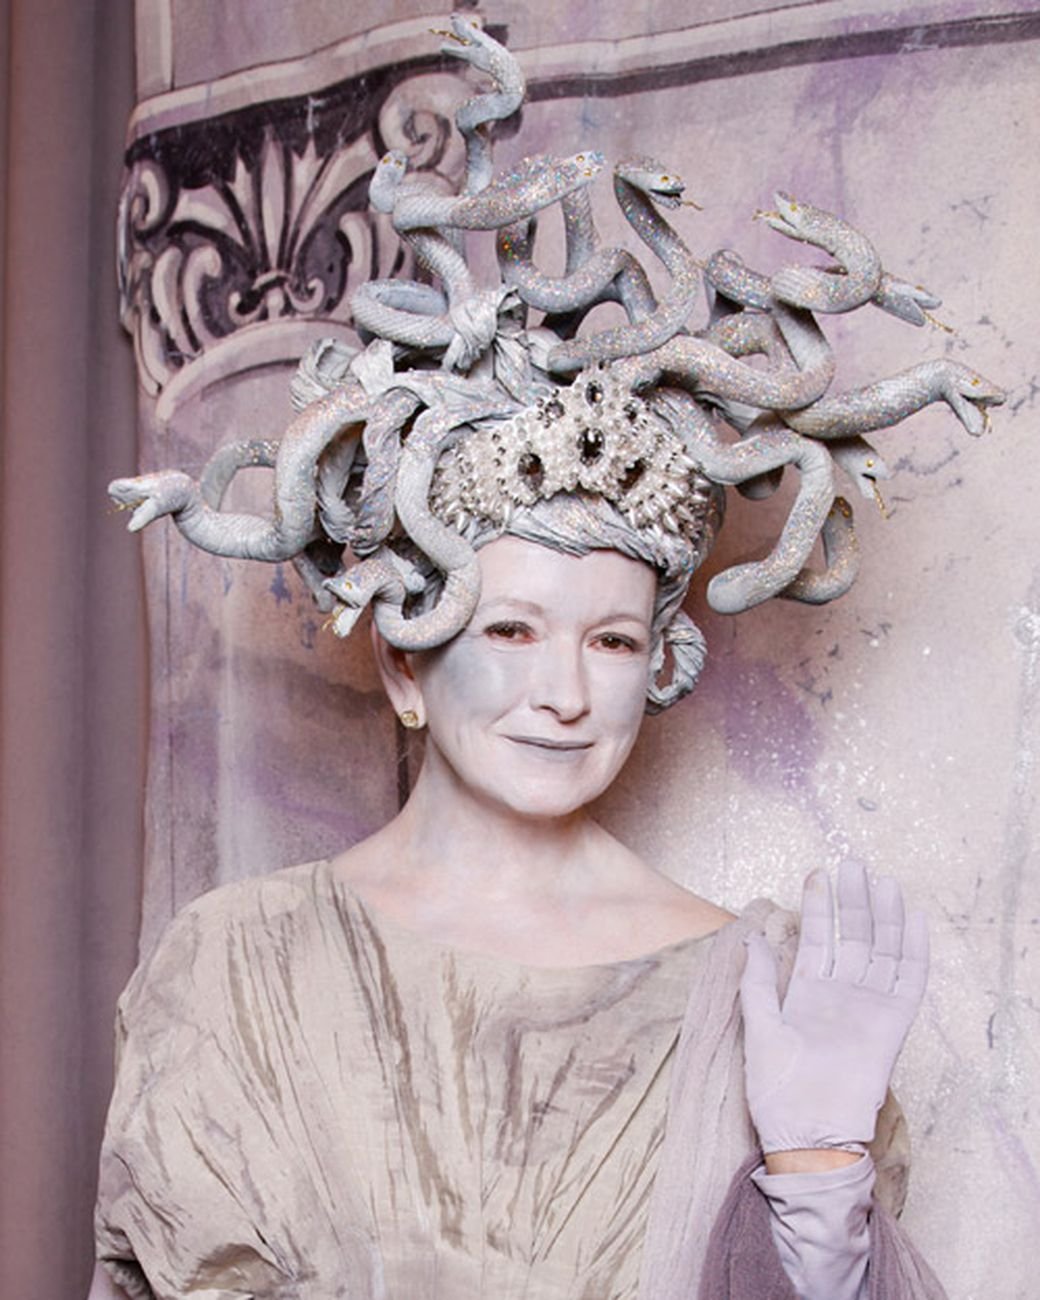 Find and save ideas about Medusa costume on Pinterest. | See more ideas about Madusa costume, Medusa makeup and Medusa halloween. A Martha Stewart Halloween: Inexpensive rubber pests are all you need to create a creepy Halloween costume. Find this .